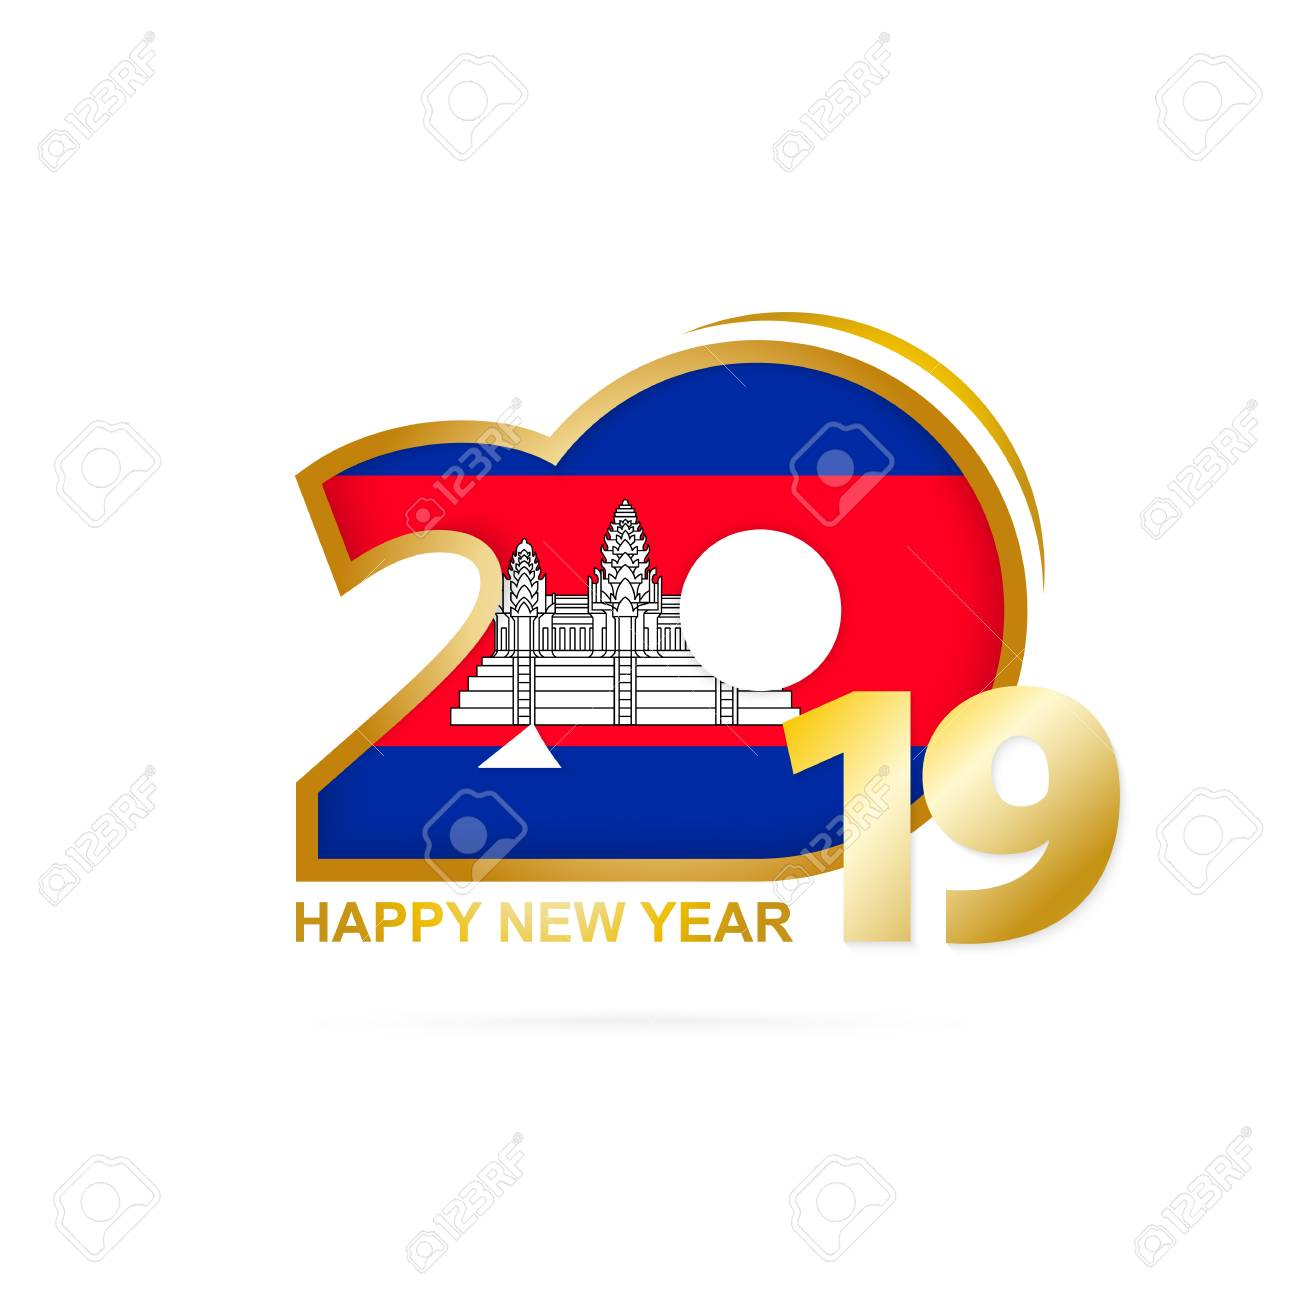 Cambodian New Year 2019 Year 2019 With Cambodia Flag Pattern. Happy New Year Design